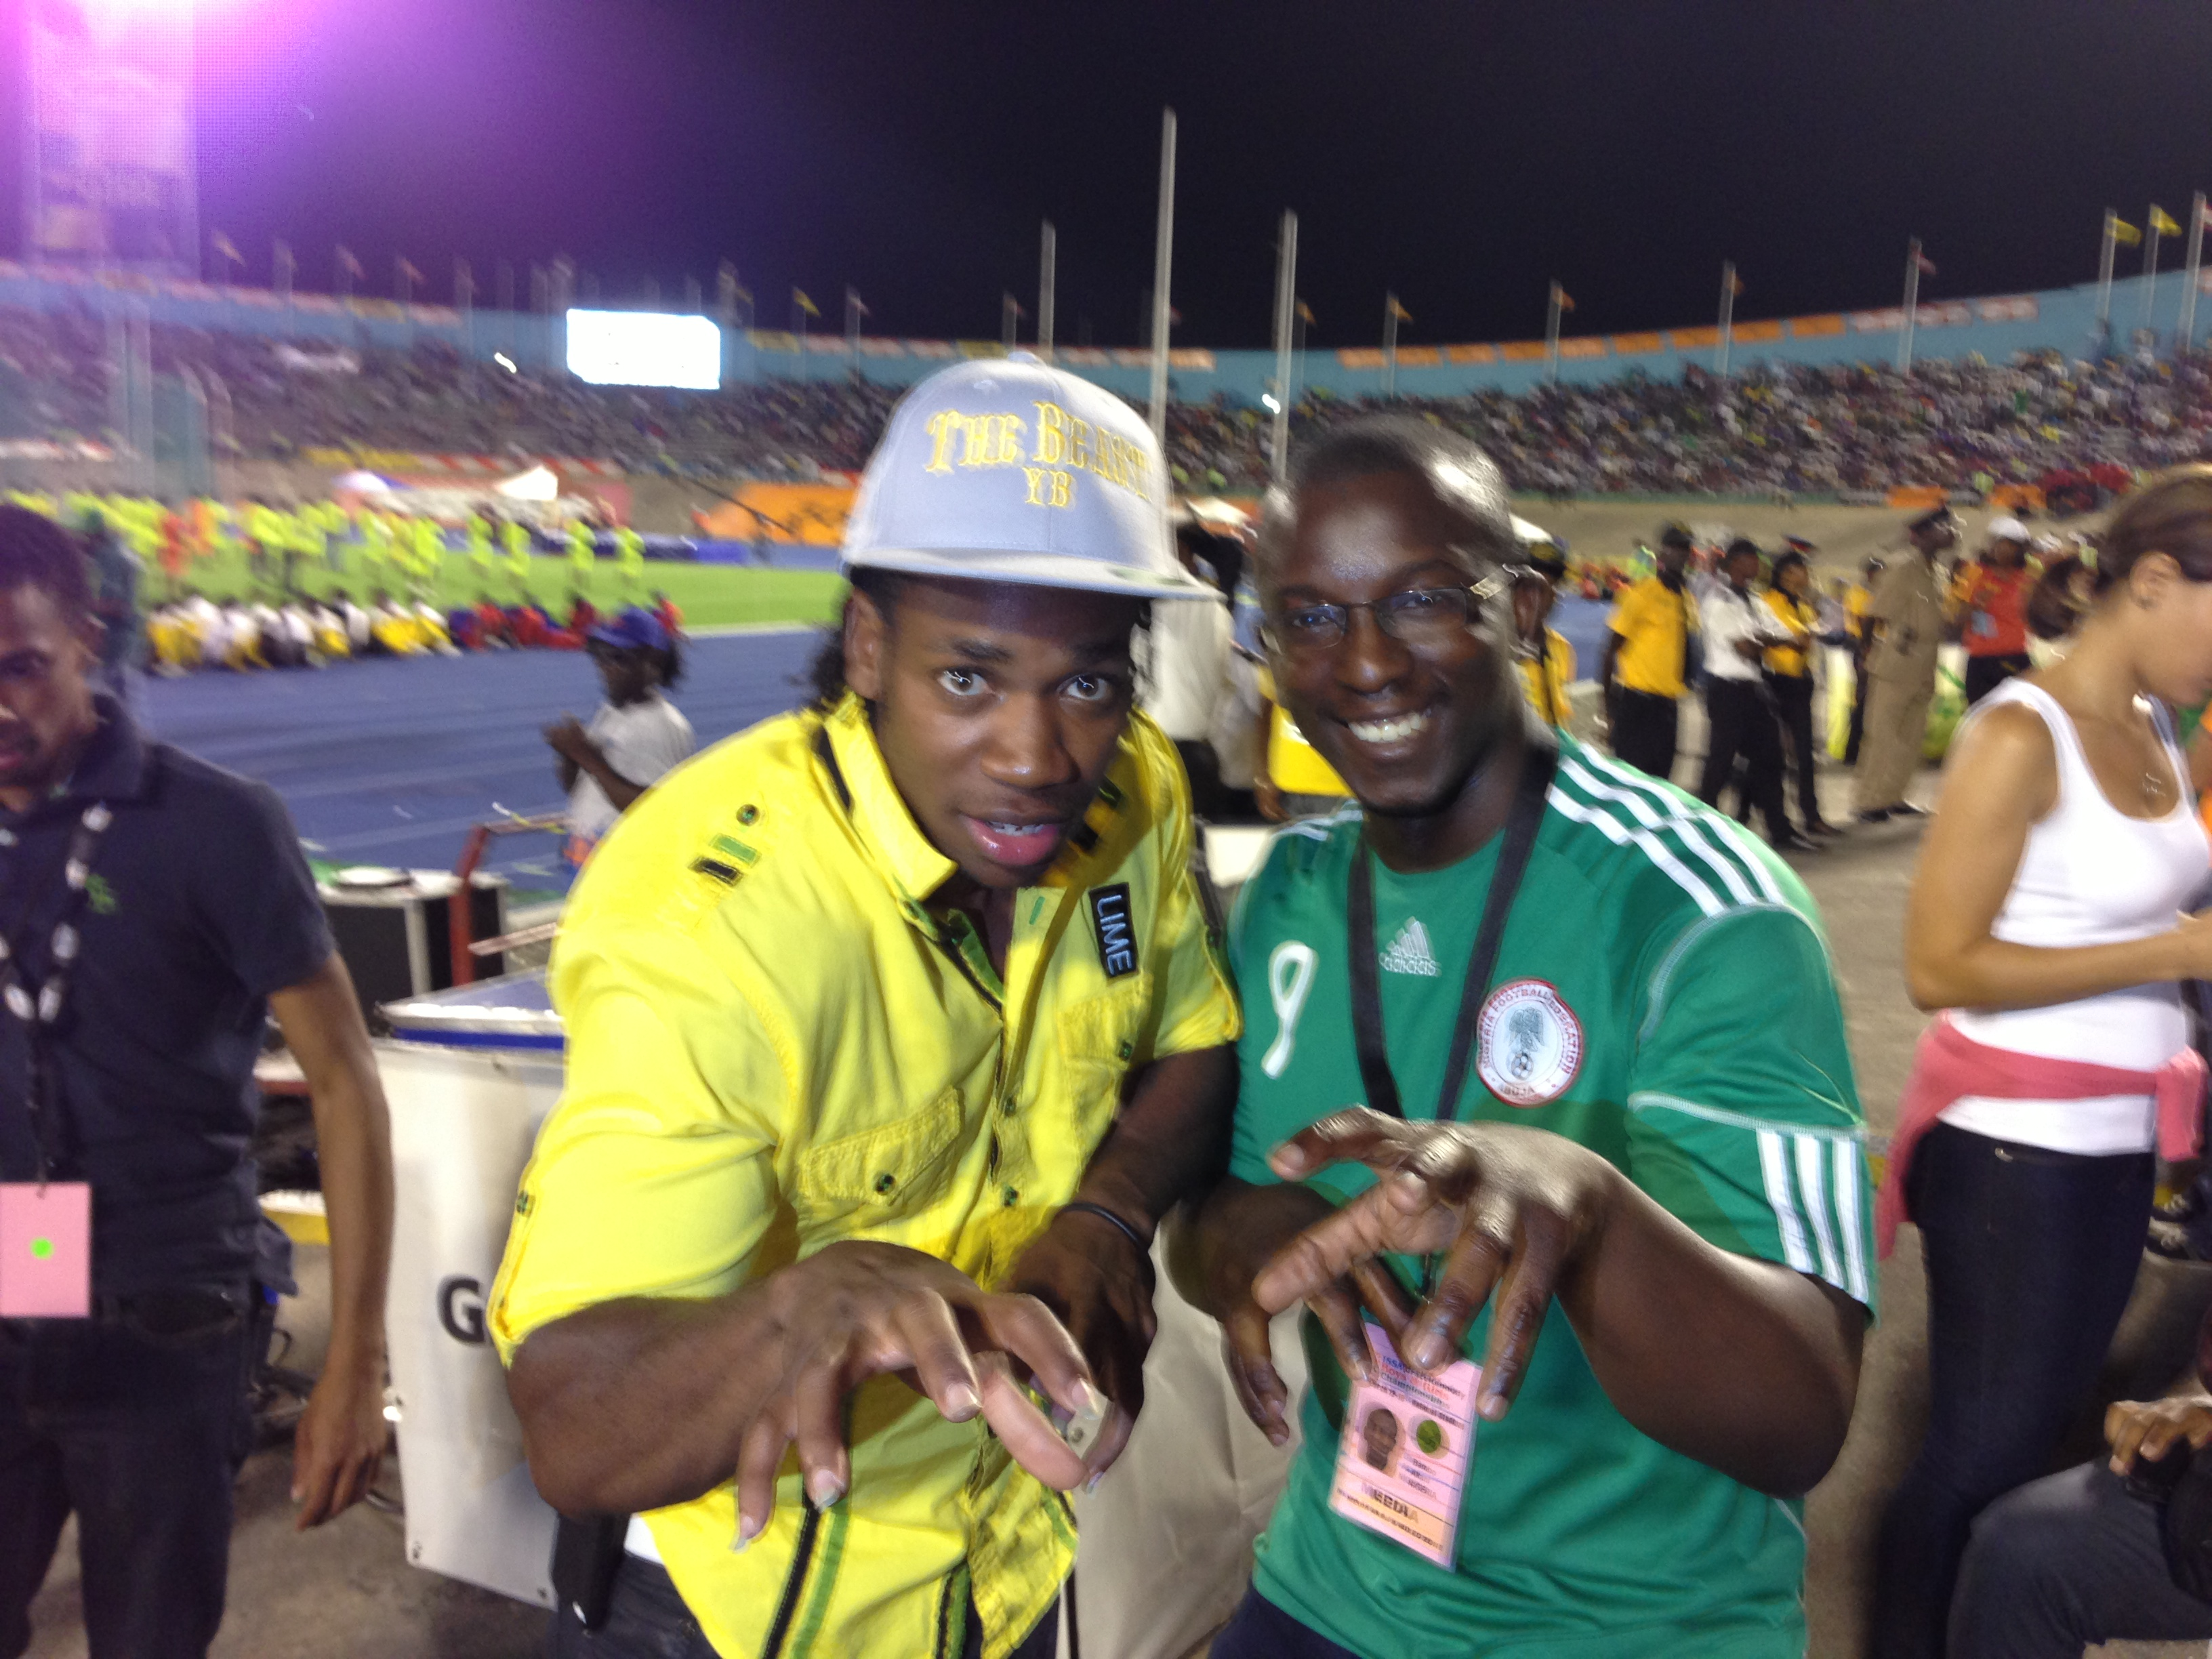 Yohan Blake and Bambo Akani at CHAMPS